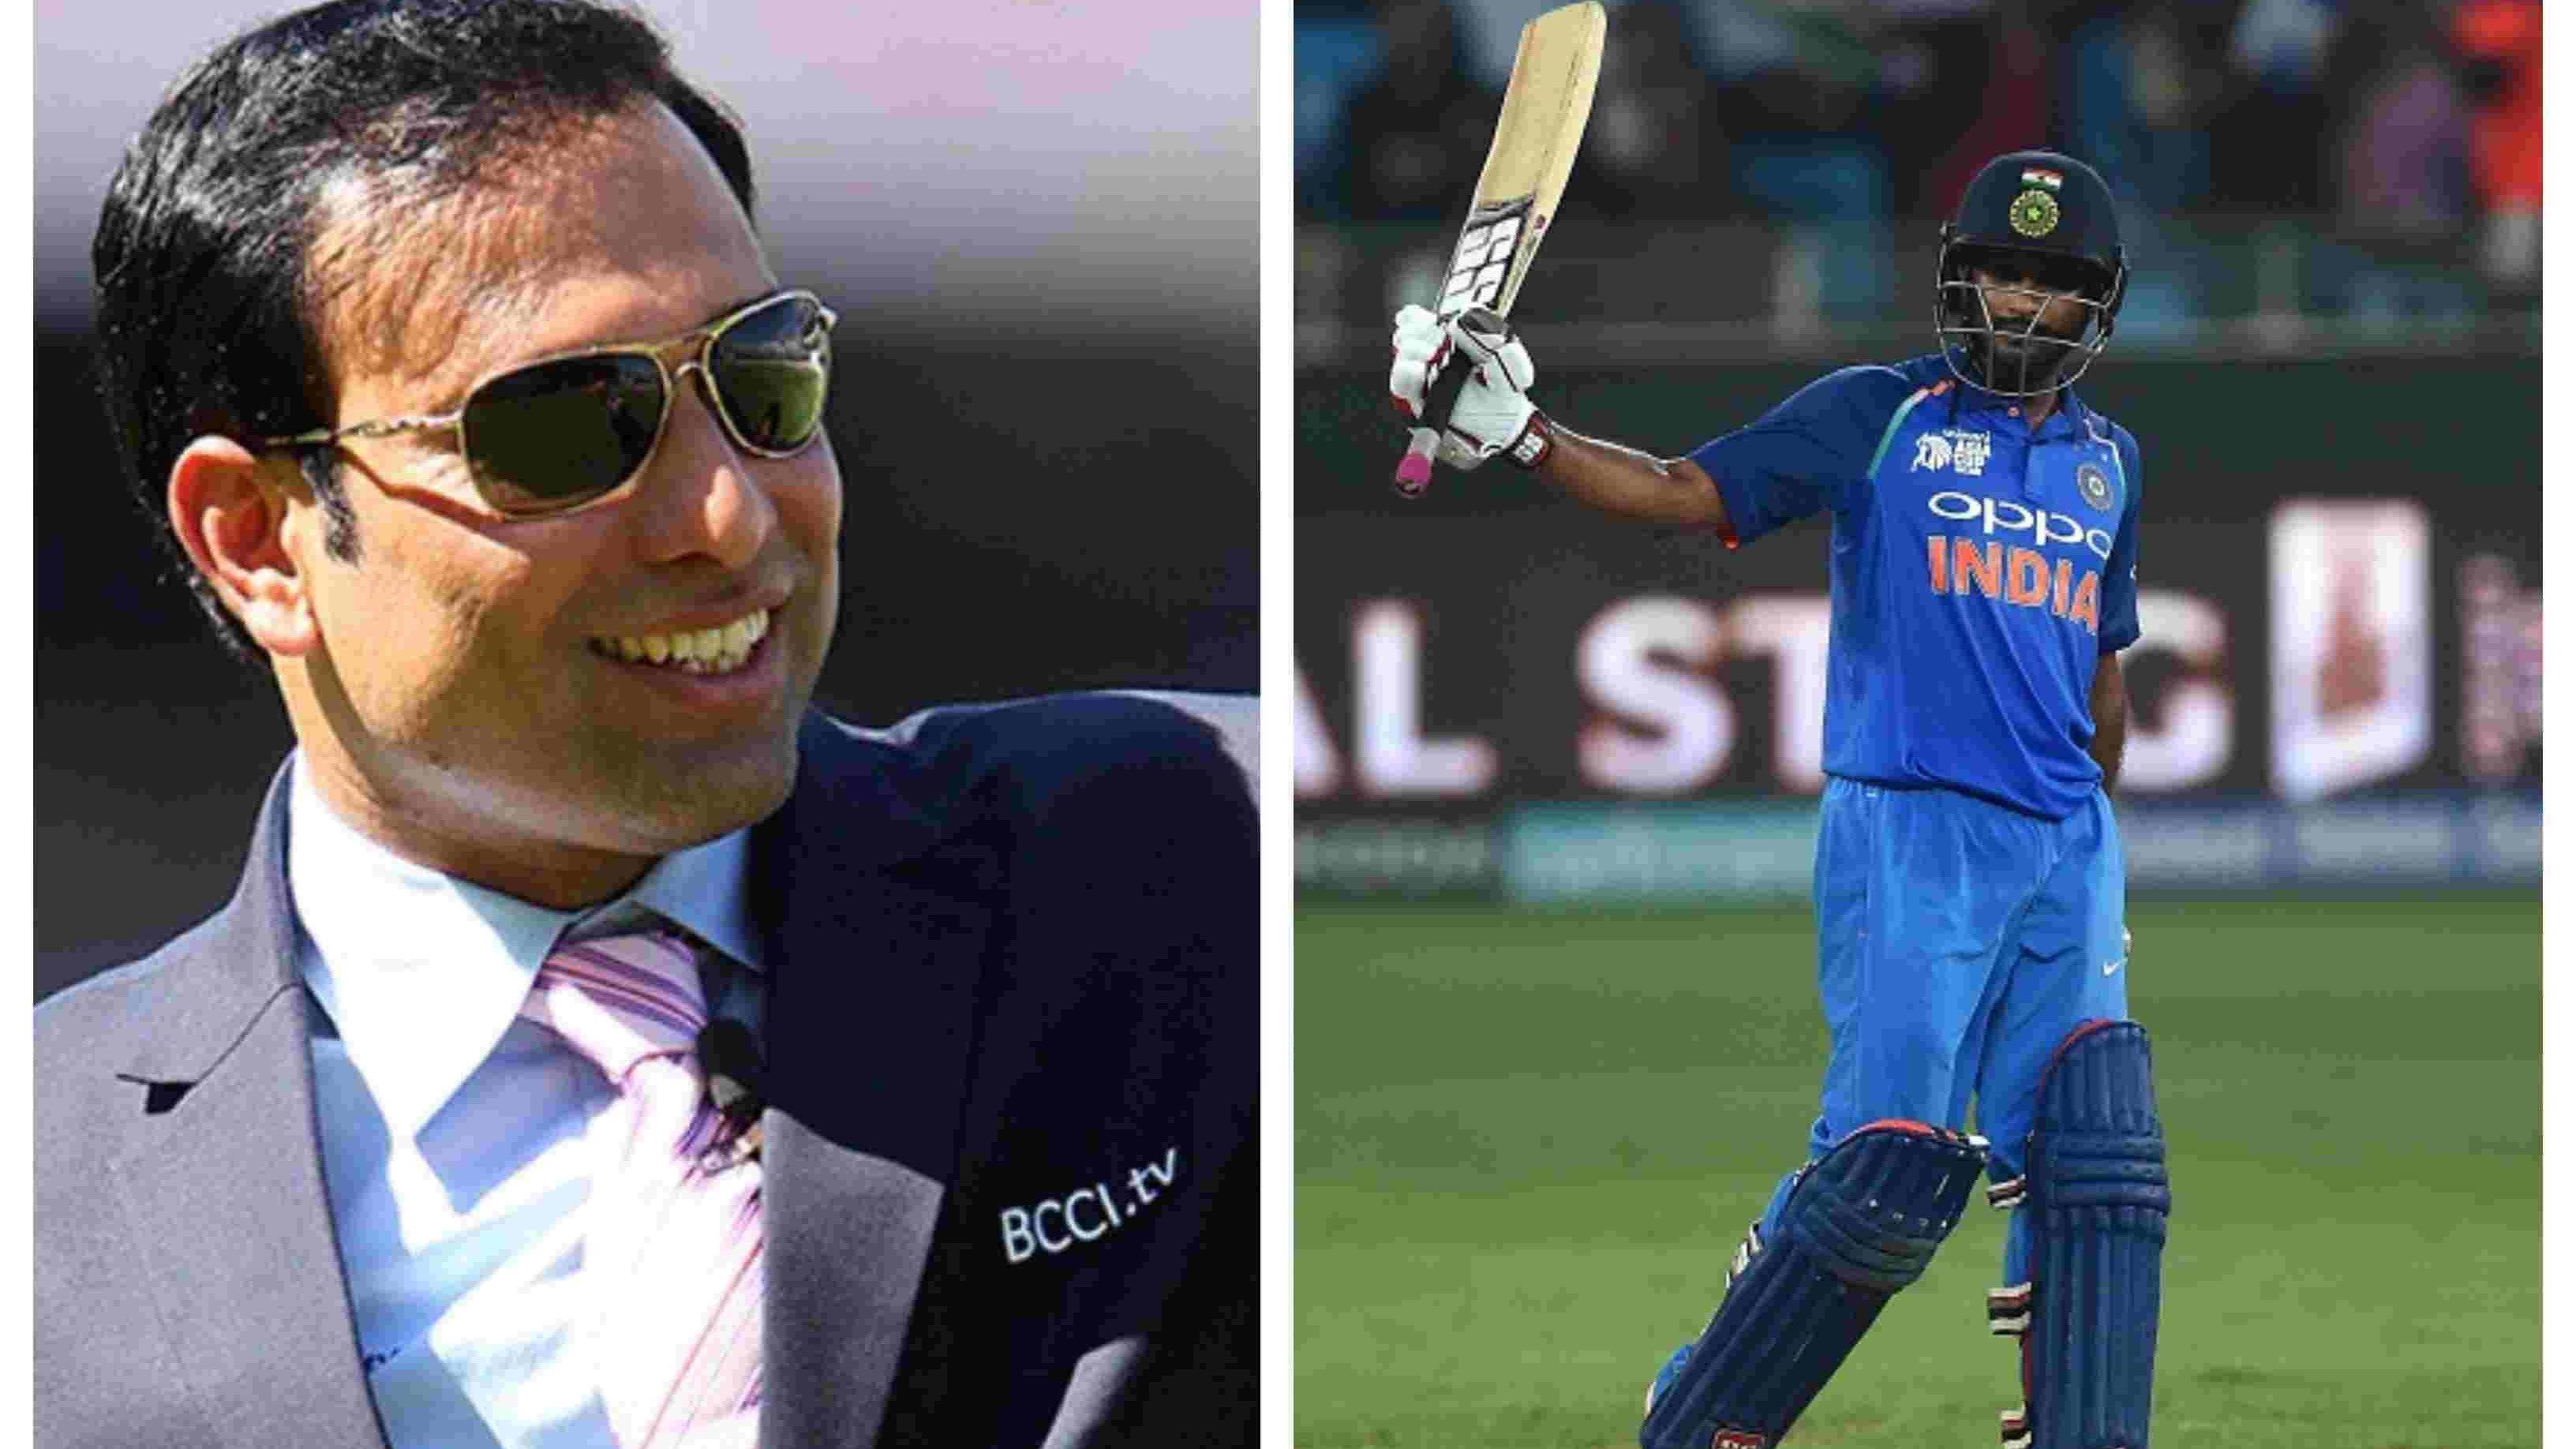 IND v WI 2018: Ambati Rayudu's consistency at No. 4 is the biggest gain from ODI series, says VVS Laxman